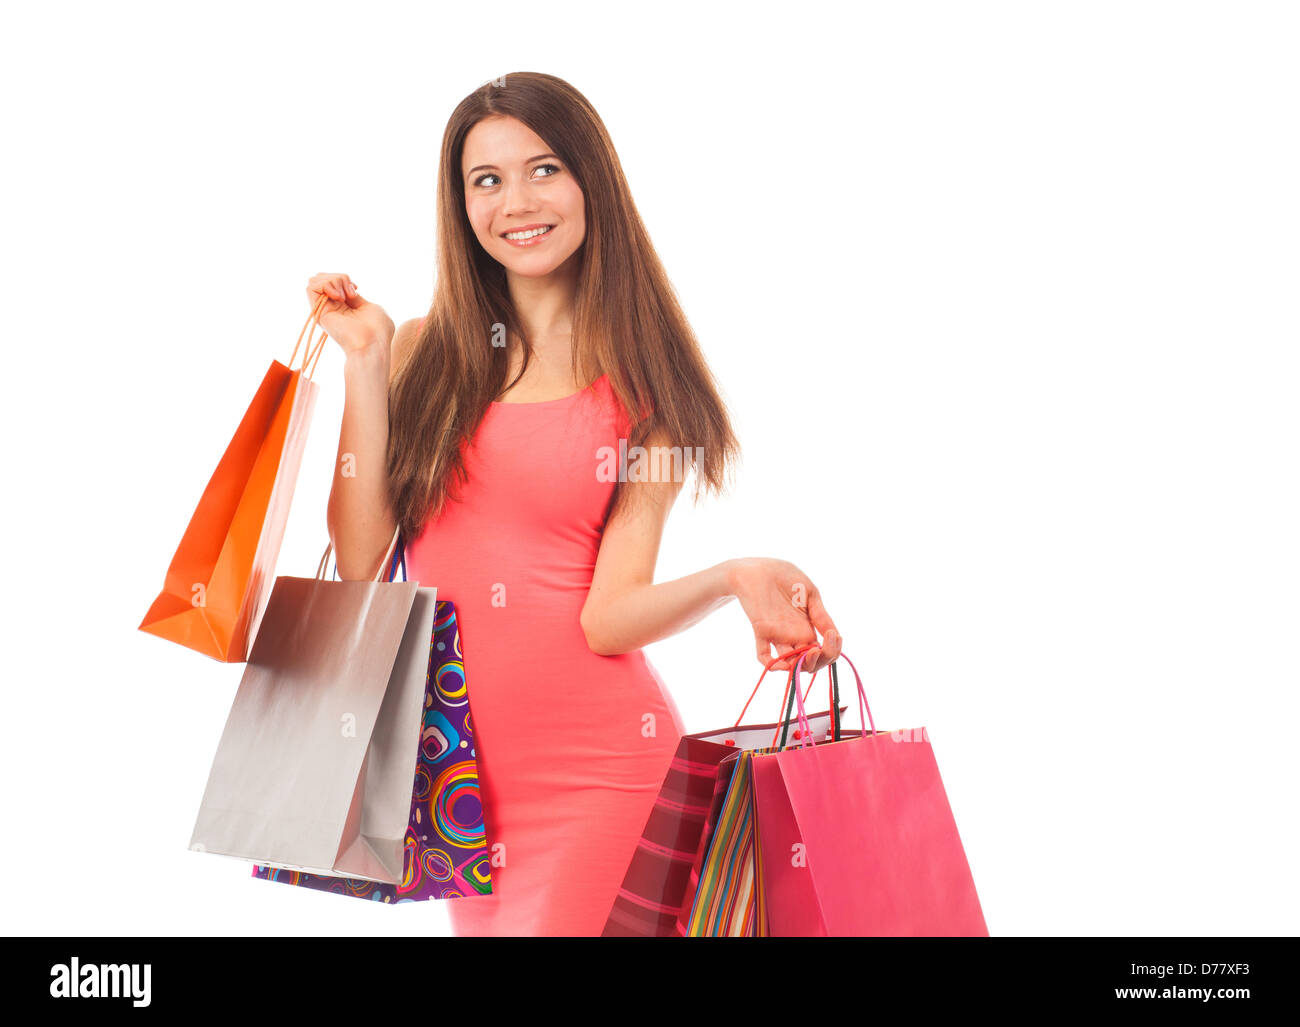 Pretty woman shopping, holding shopping bags, isolated on white - Stock Image